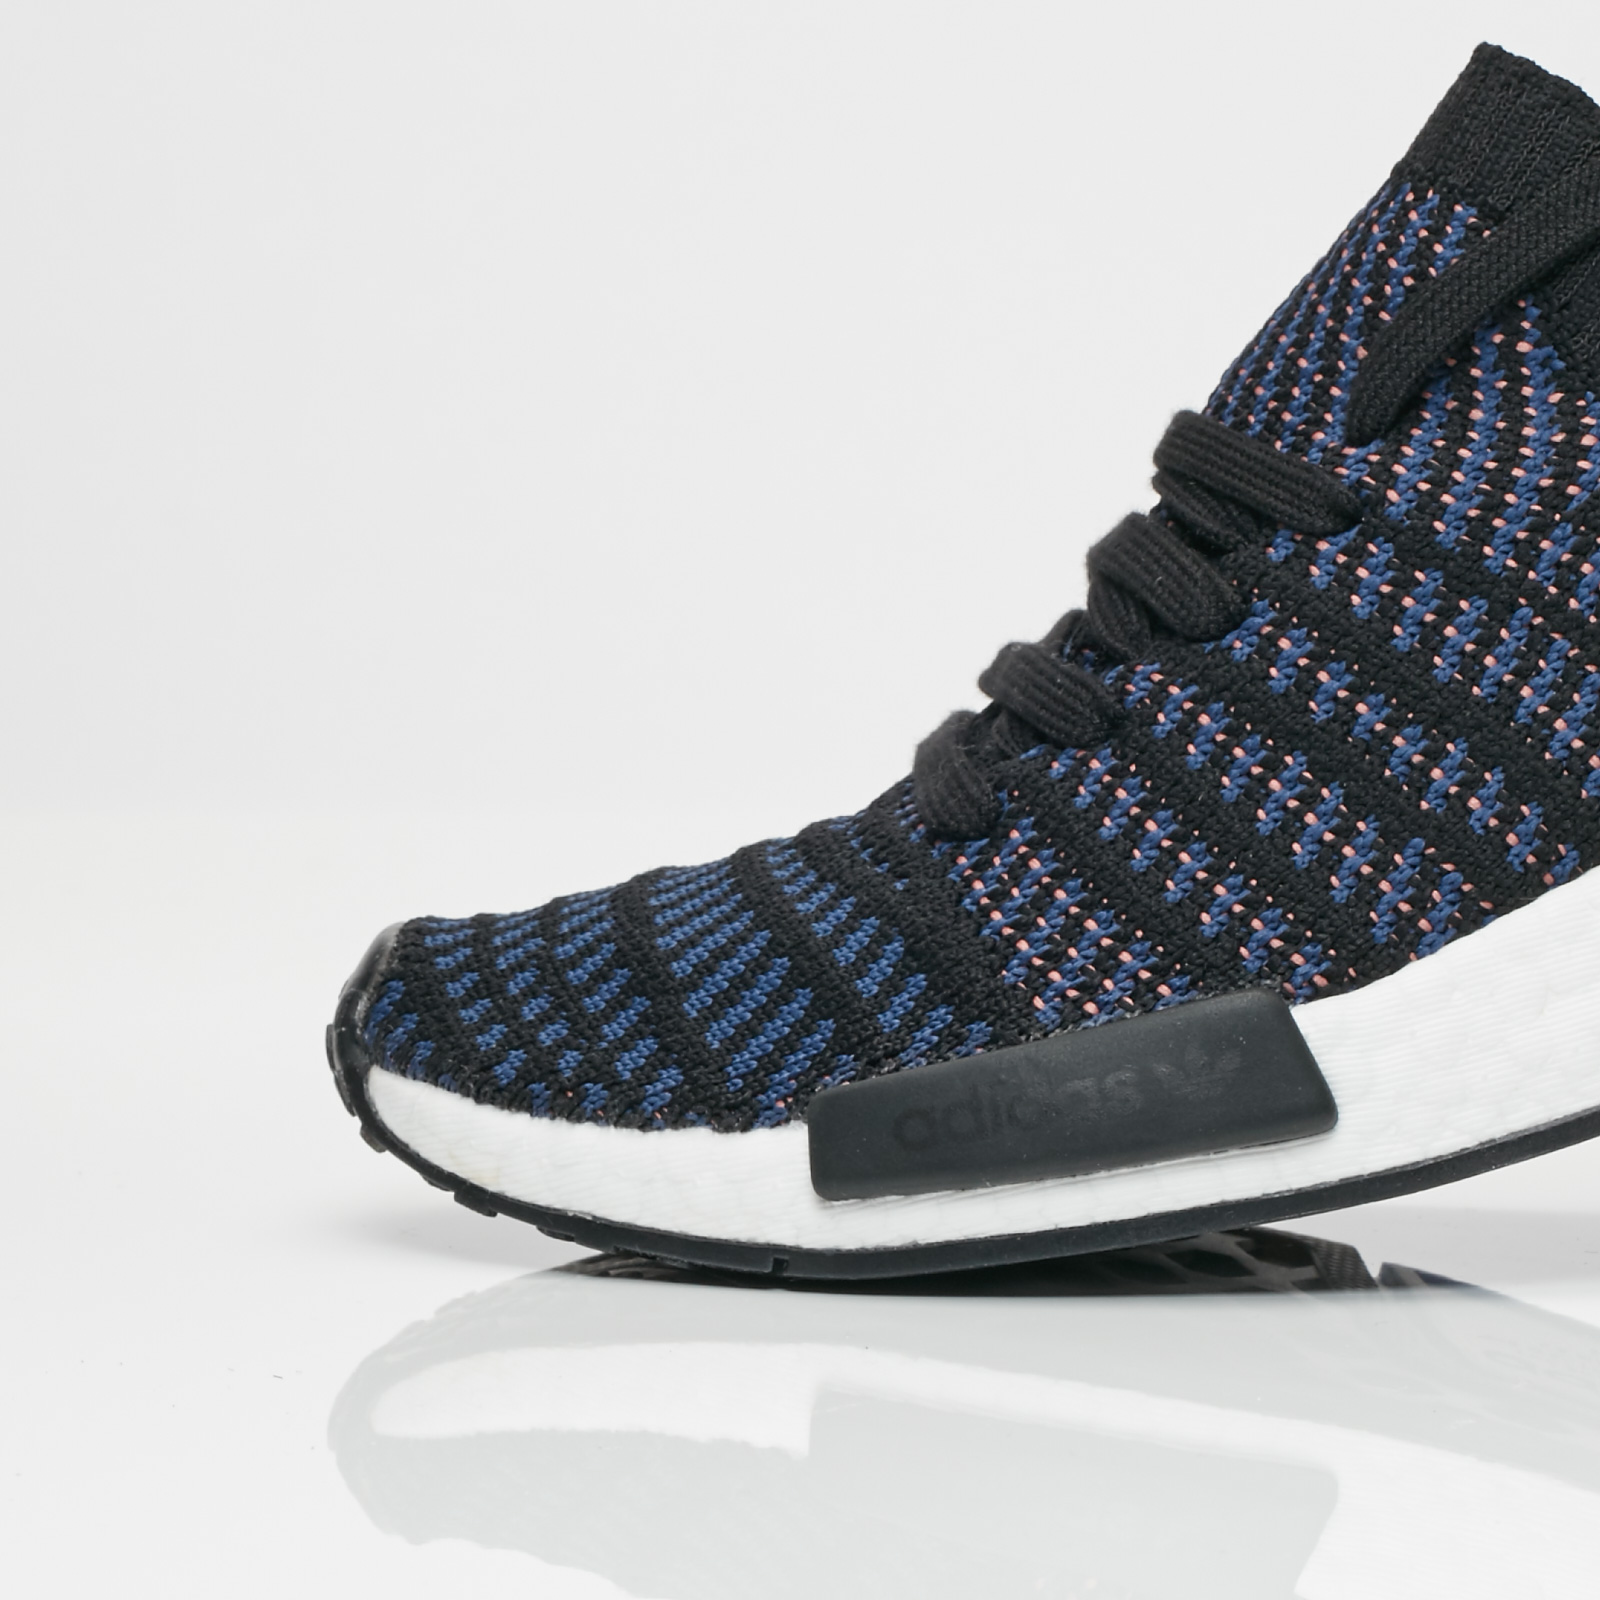 check out b5594 d0d33 adidas NMD R1 STLT PK W - Ac8326 - Sneakersnstuff | sneakers ...